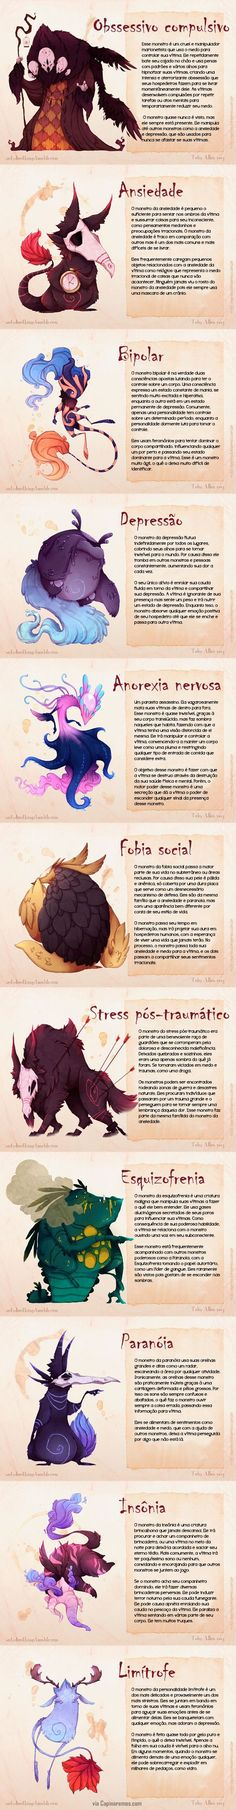 A saga de Anon, o Carinha do TI – Episódio - Capinaremos Comic Cover, Comic Art, Mythology, Science, Character Design, Geek Stuff, Creatures, Humor, Feelings